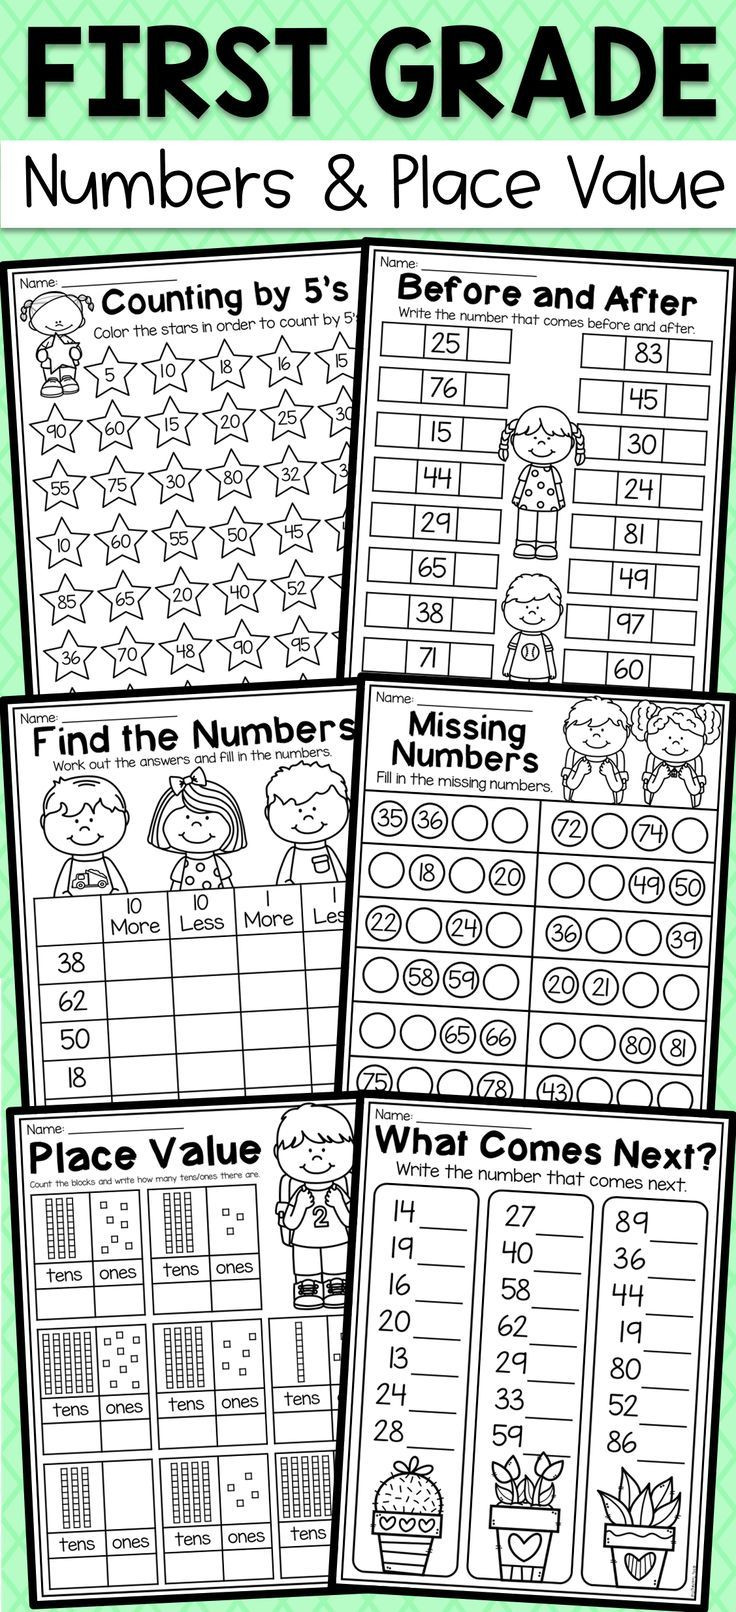 Place Value First Grade Worksheets First Grade Numbers and Place Value Worksheets Distance